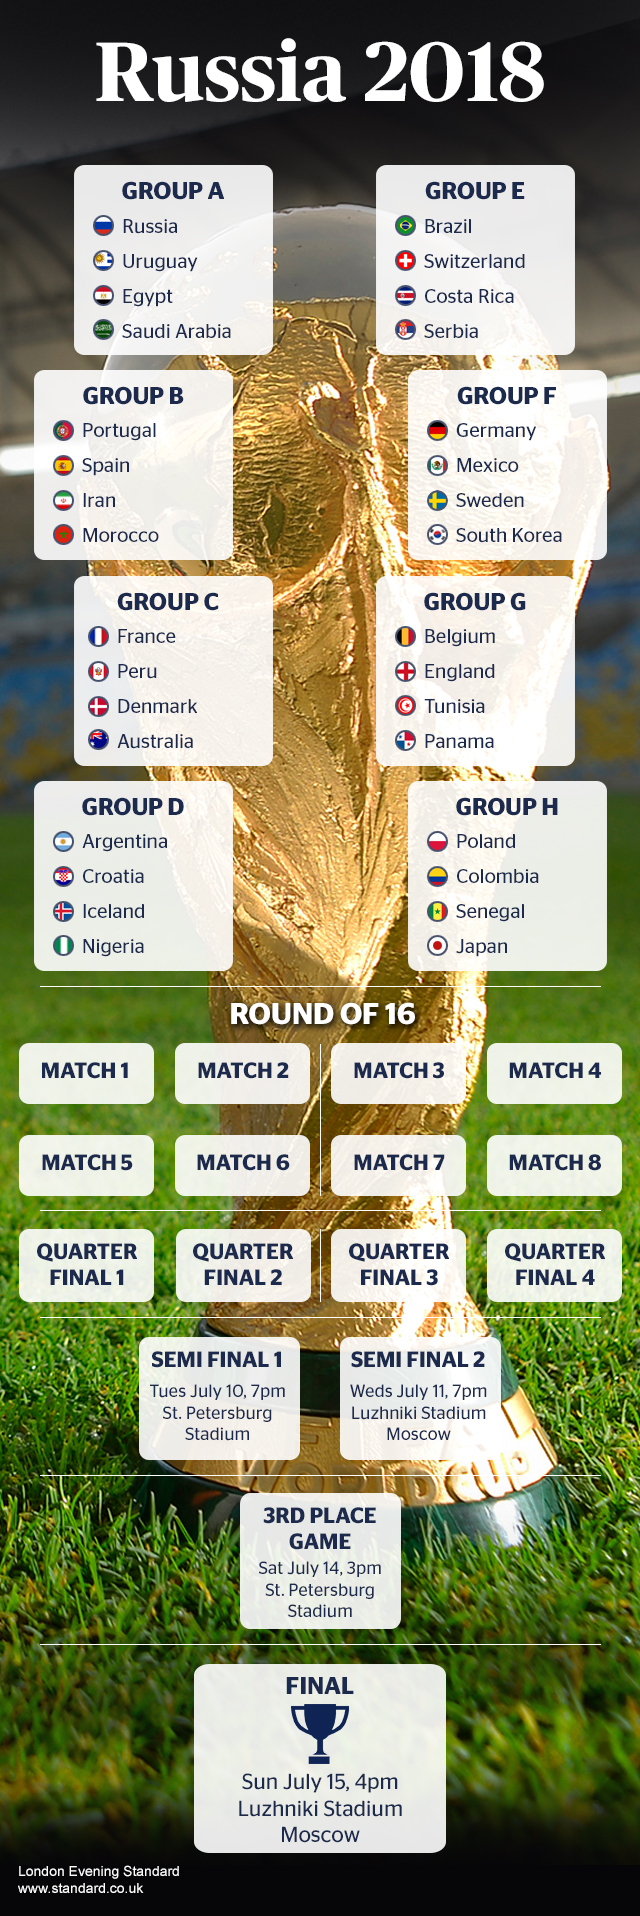 FIFA World Cup 2018 fixtures: Matches, dates, groups and venues in